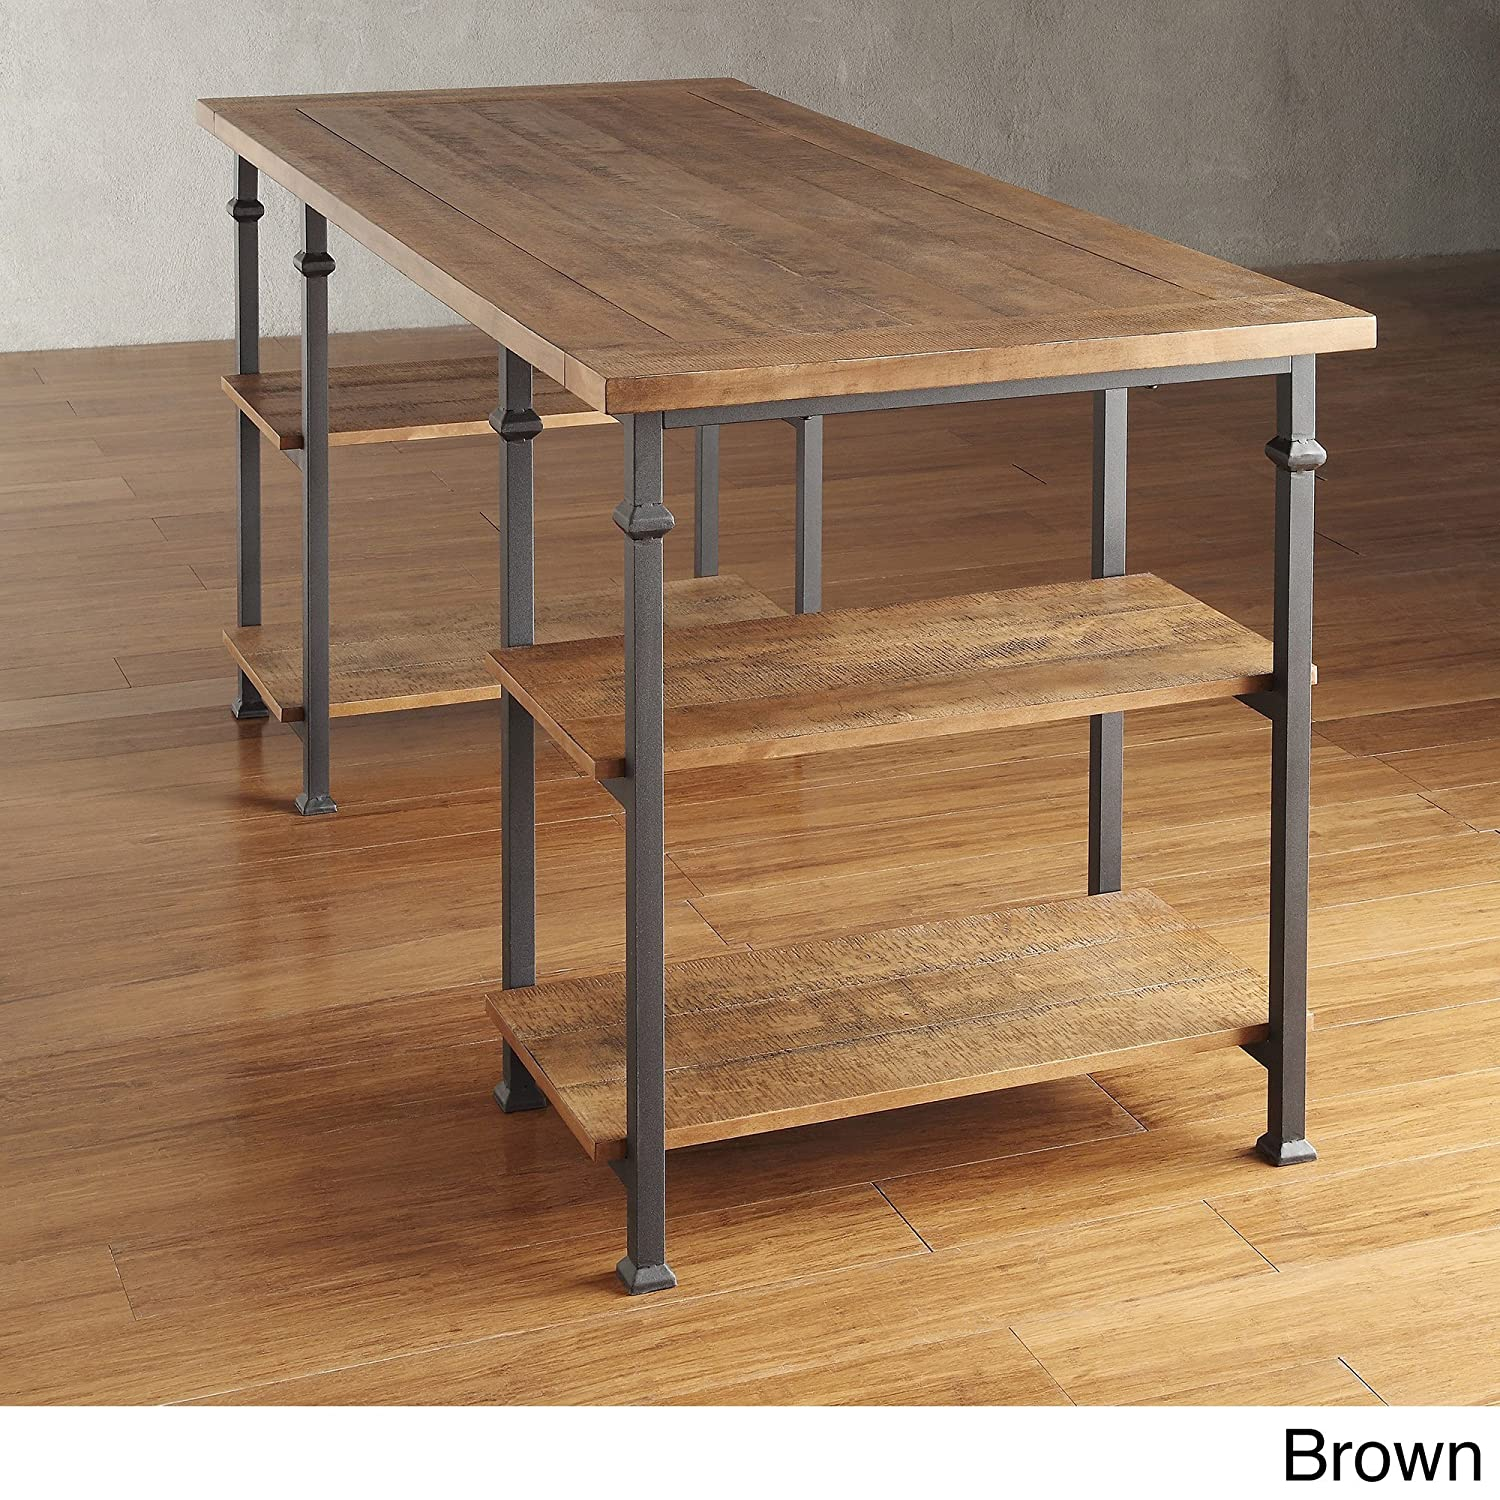 Amazon com industrial desk rustic wood and metal storage desk with shelves for the home or office included mousepad brown kitchen dining